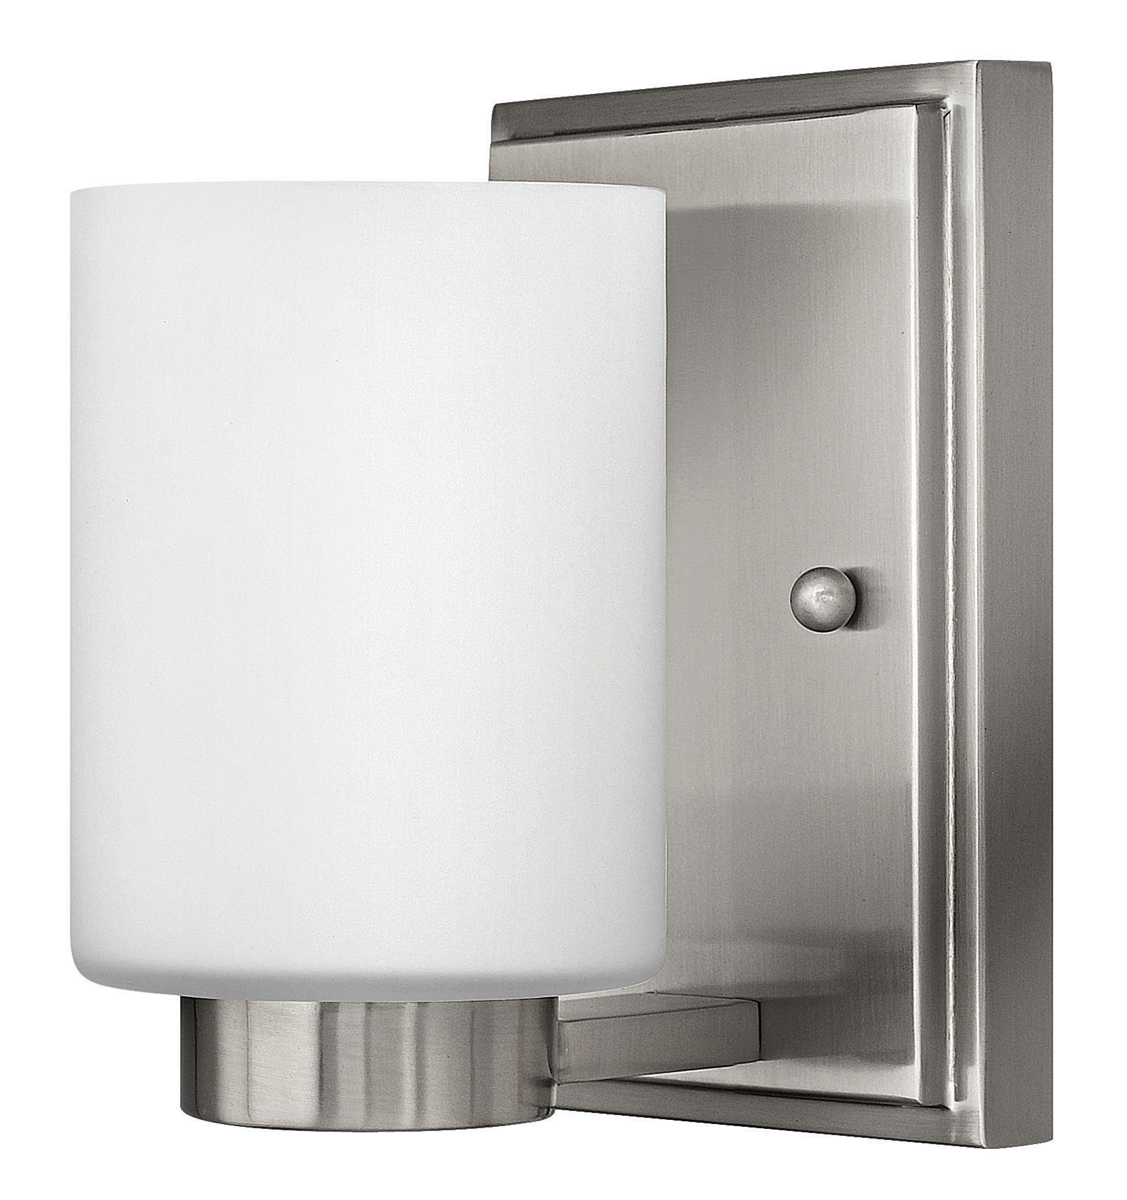 hinkley bathroom lighting hinkley lighting 5050bn miley single light bathroom 13138